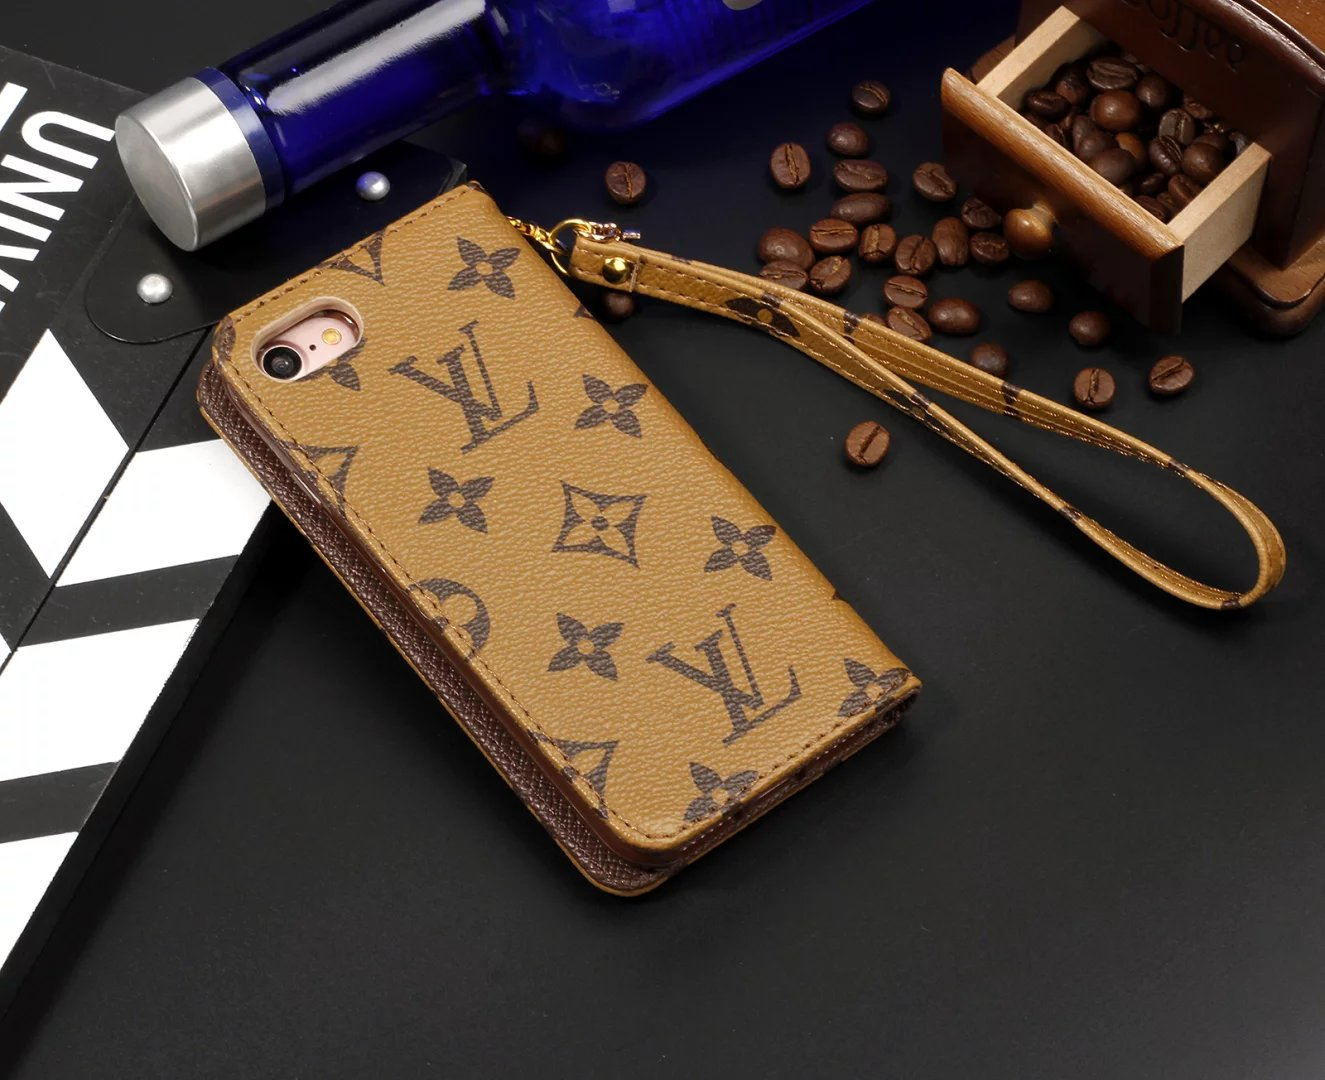 iphone hülle drucken coole iphone hüllen Louis Vuitton iphone7 Plus hülle handy hülle bedrucken iphone ca7 foto apple iphone 7 Plus schutzhülle iphone 3 schutzhülle original iphone hülle chanel handyhülle iphone 7 Plus